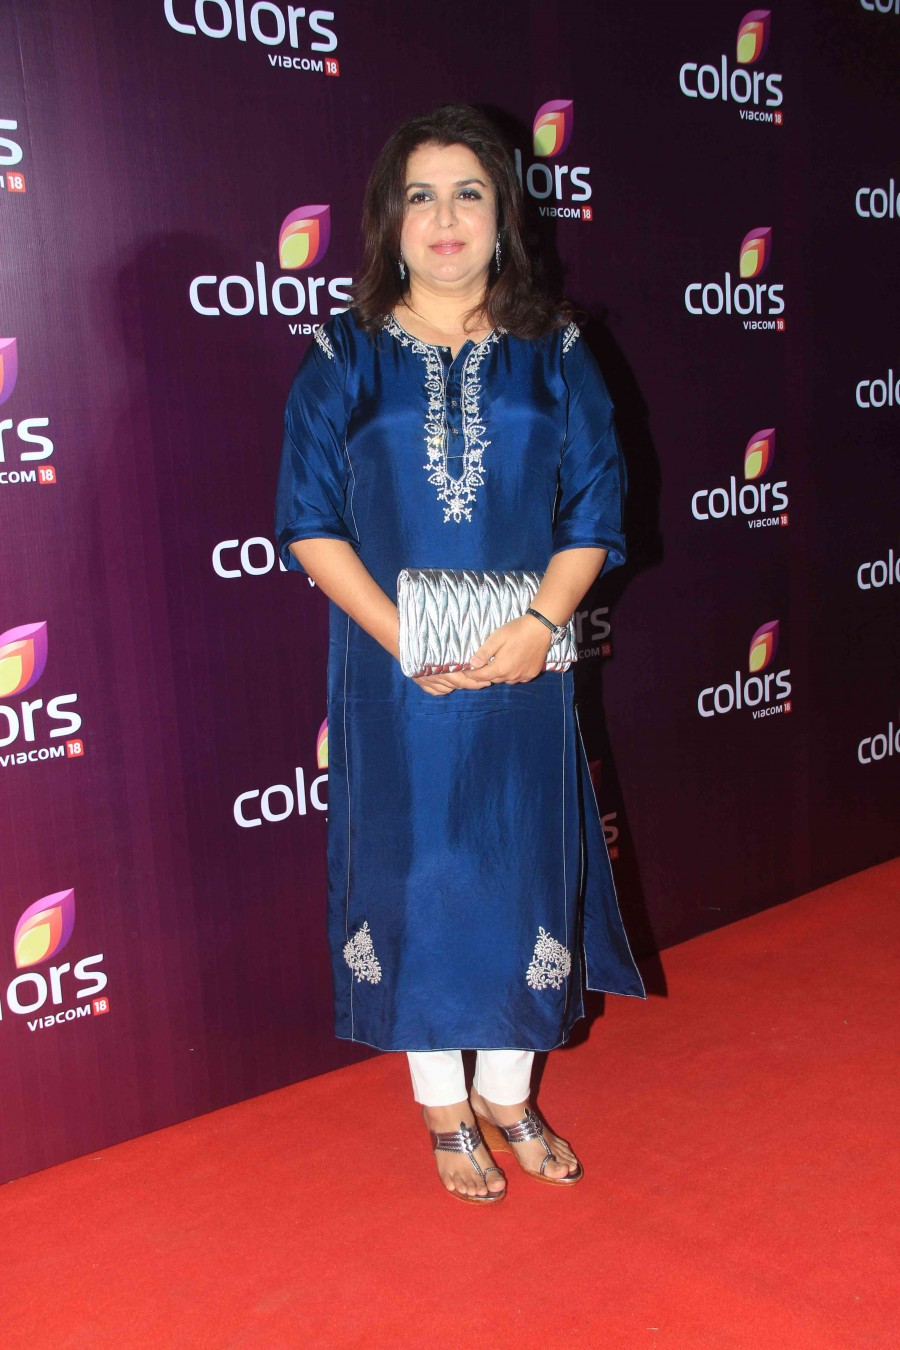 Colors TV,colors party,Hrithik Roshan,gautam gulati,Alia Bhatt,Sidharth Malhotra,Varun Dhawan,Shraddha Kapoor,Kapil sharma,photos